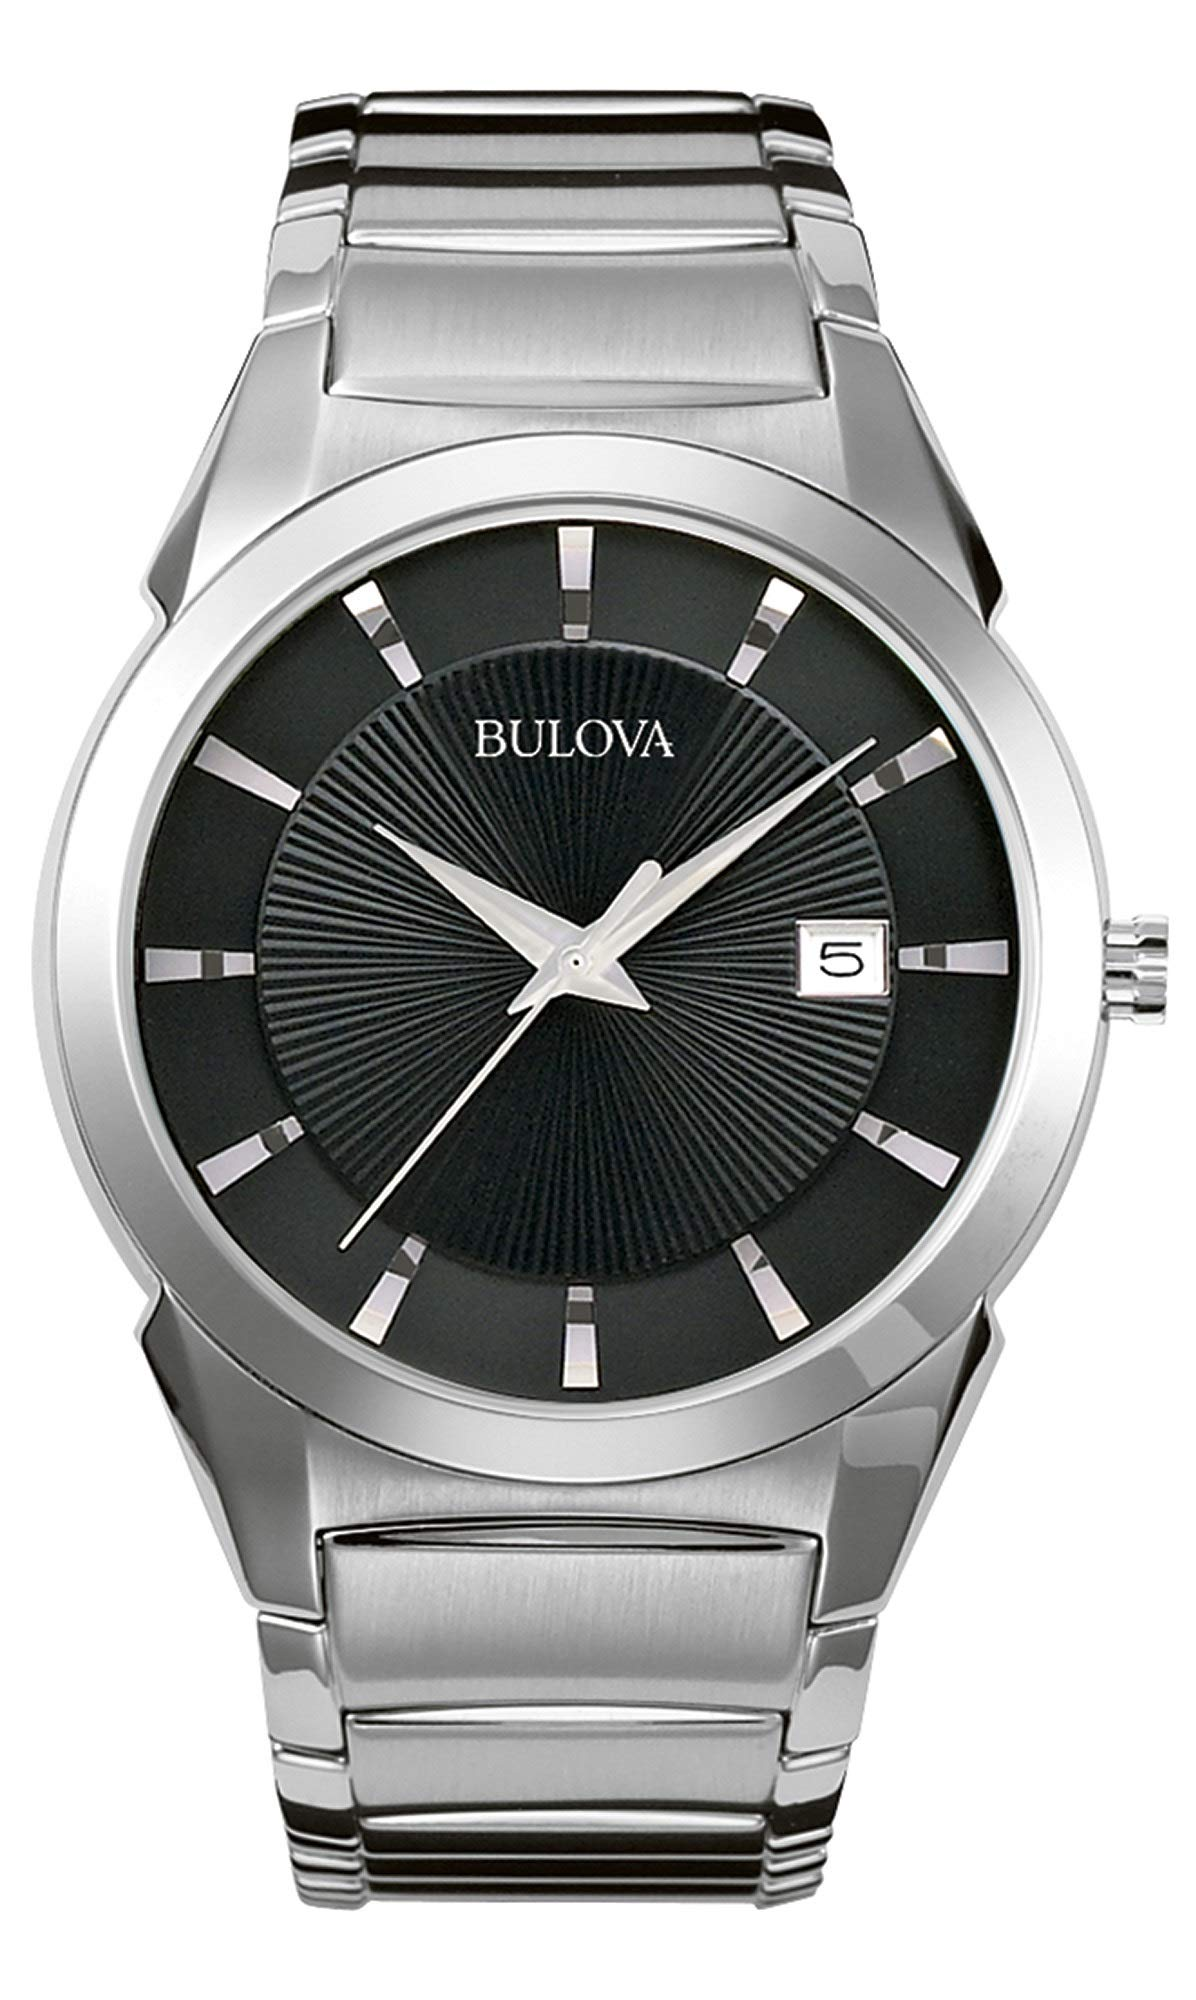 Bulova Mens Analogue Classic Quartz Watch with Stainless Steel Strap 96B149,Black